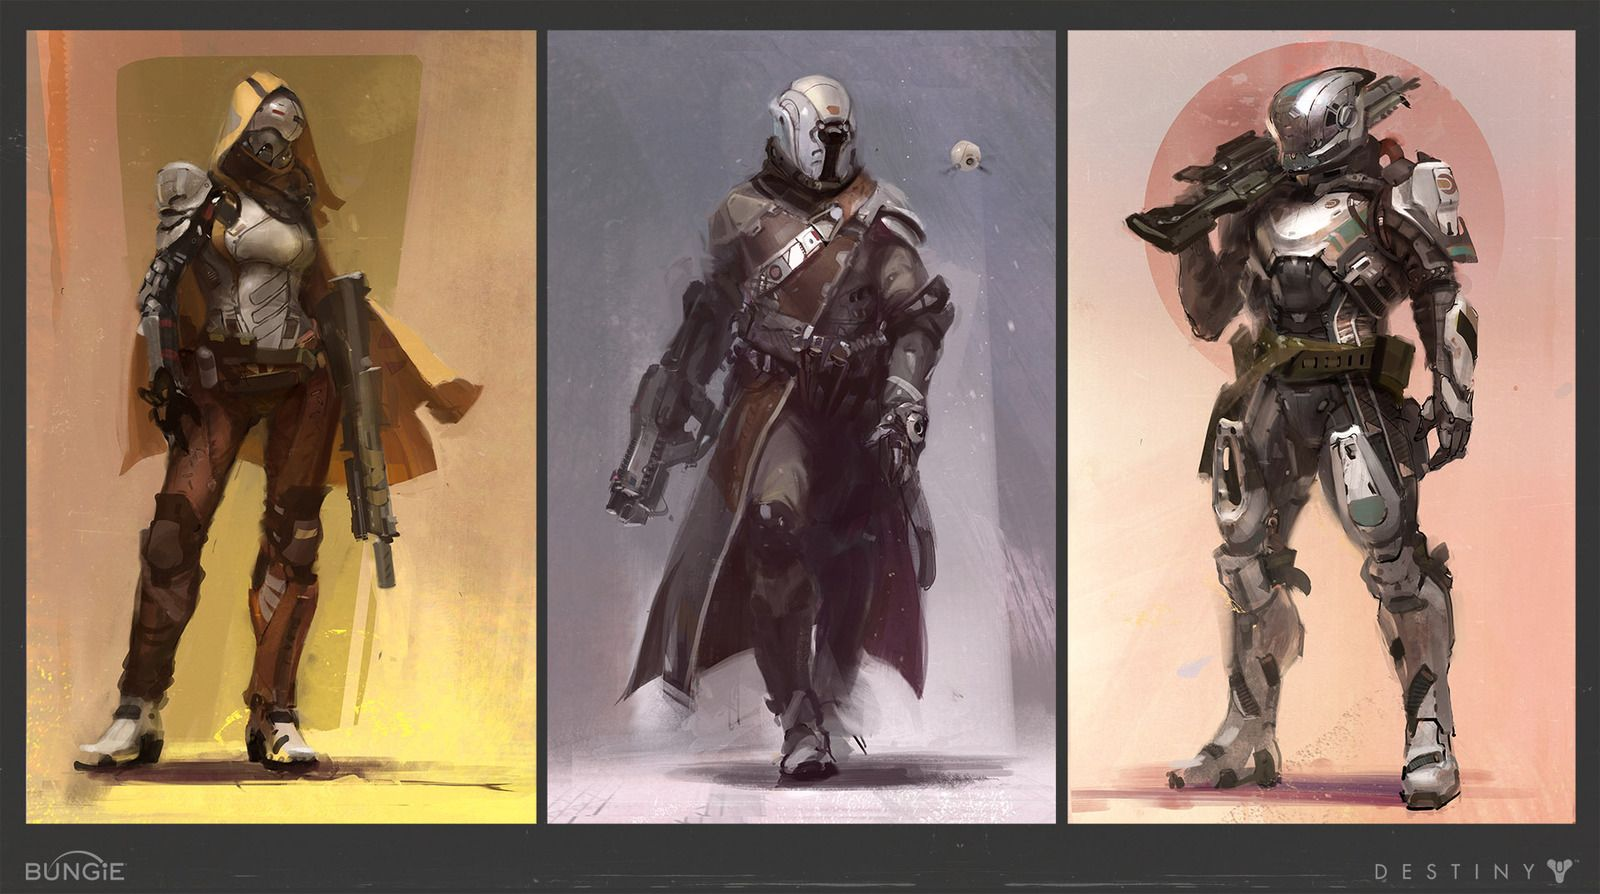 Destiny wallpaper bungie destiny artwork2 jpg - Guardian Characters Done For Bungie S New Game Destiny